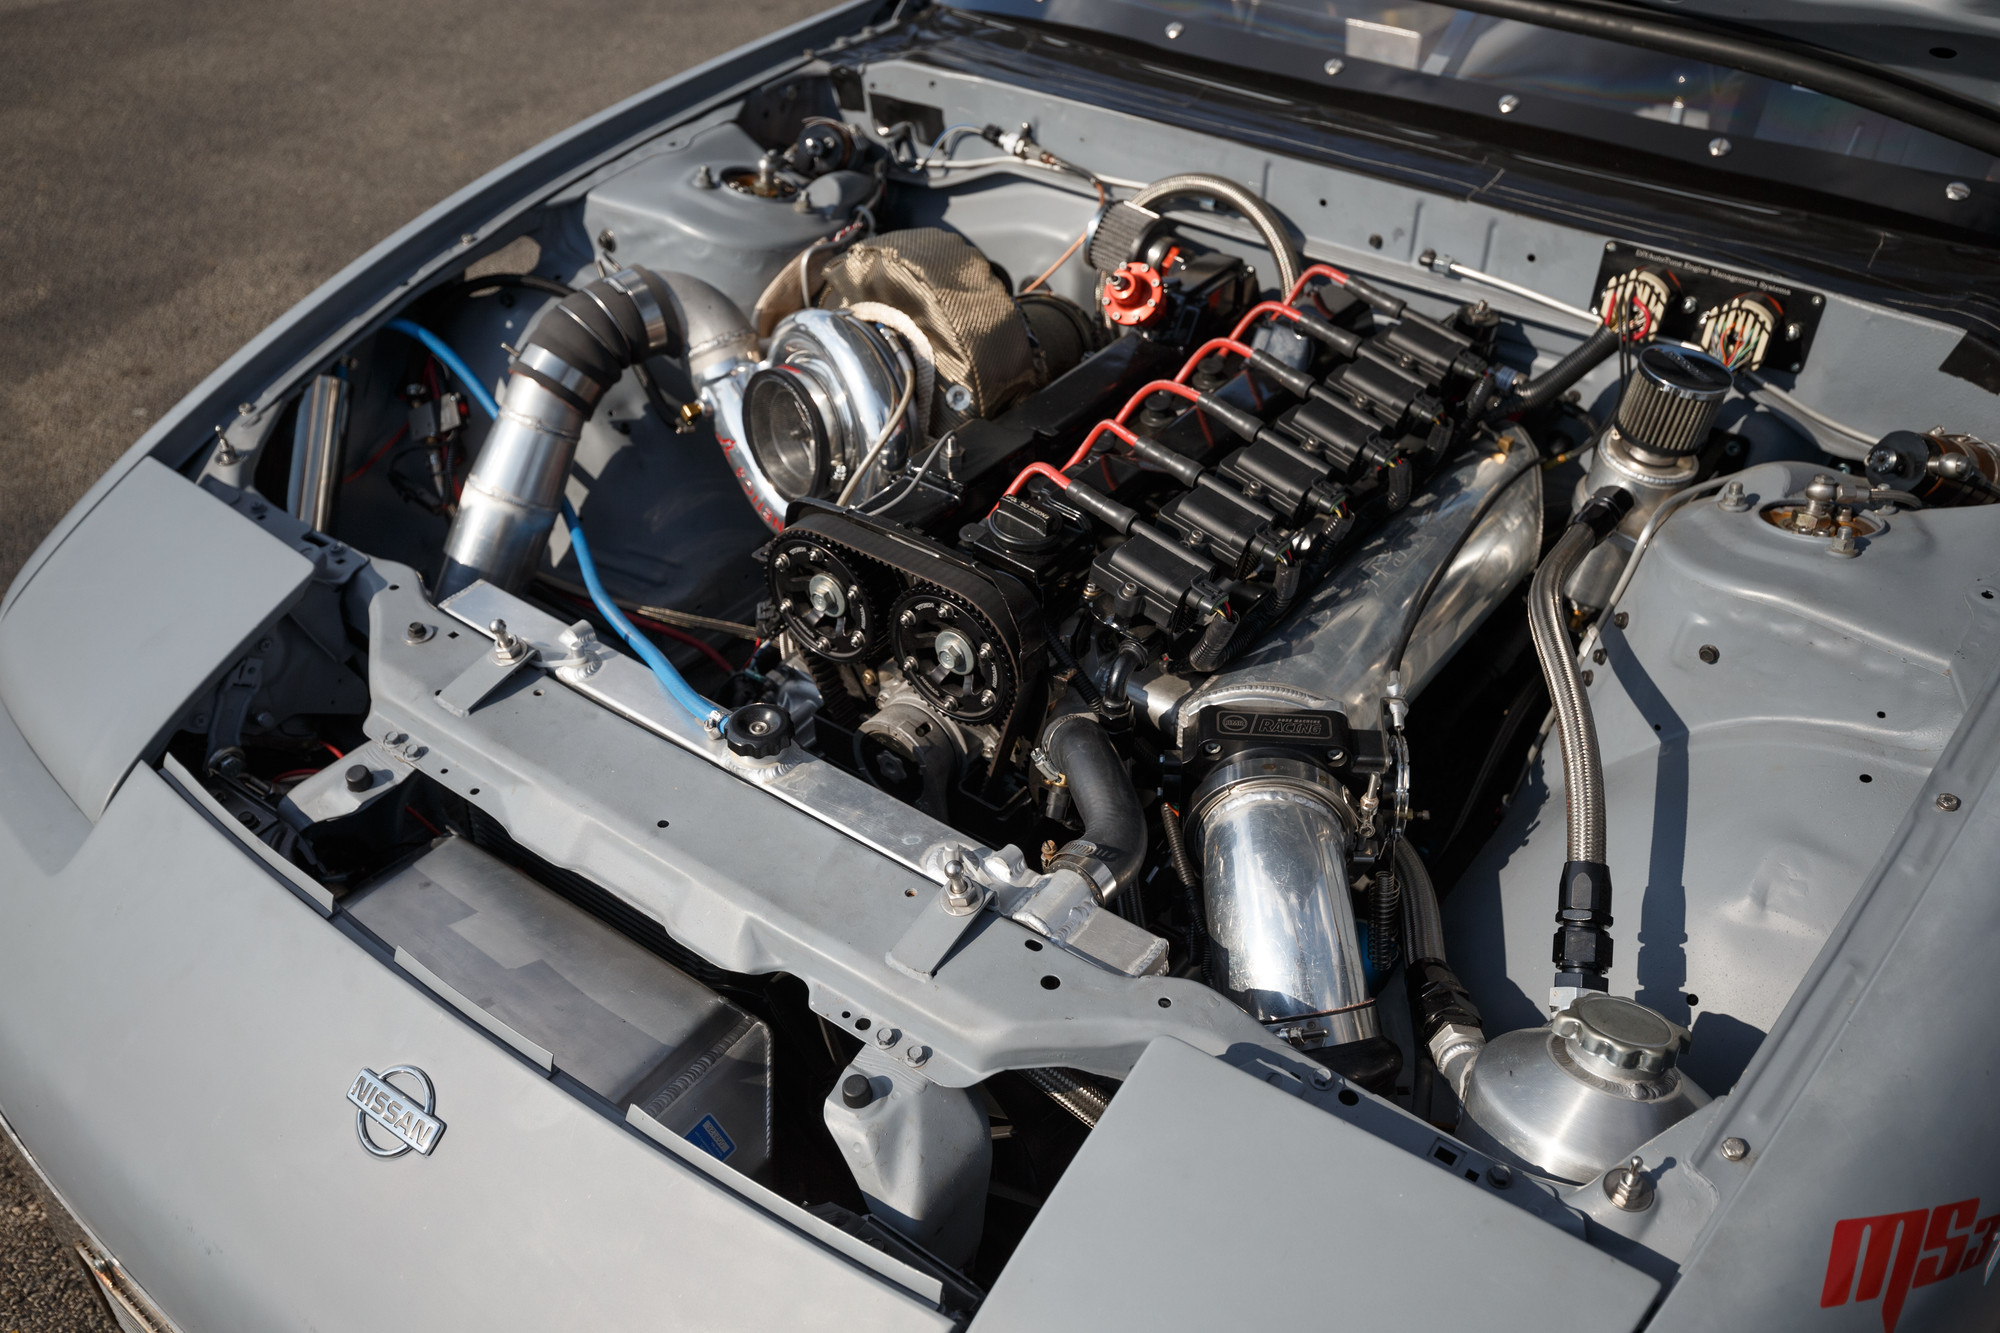 The Toyota 2JZ GTE is a 3.0L twin-turbo inline-six originally found in America in 1993–1998 Toyota Supras. Now the boosted six sends power to a G-Force GF4A transmission and a GM 12-bolt rear axle with 3.73:1 gears.